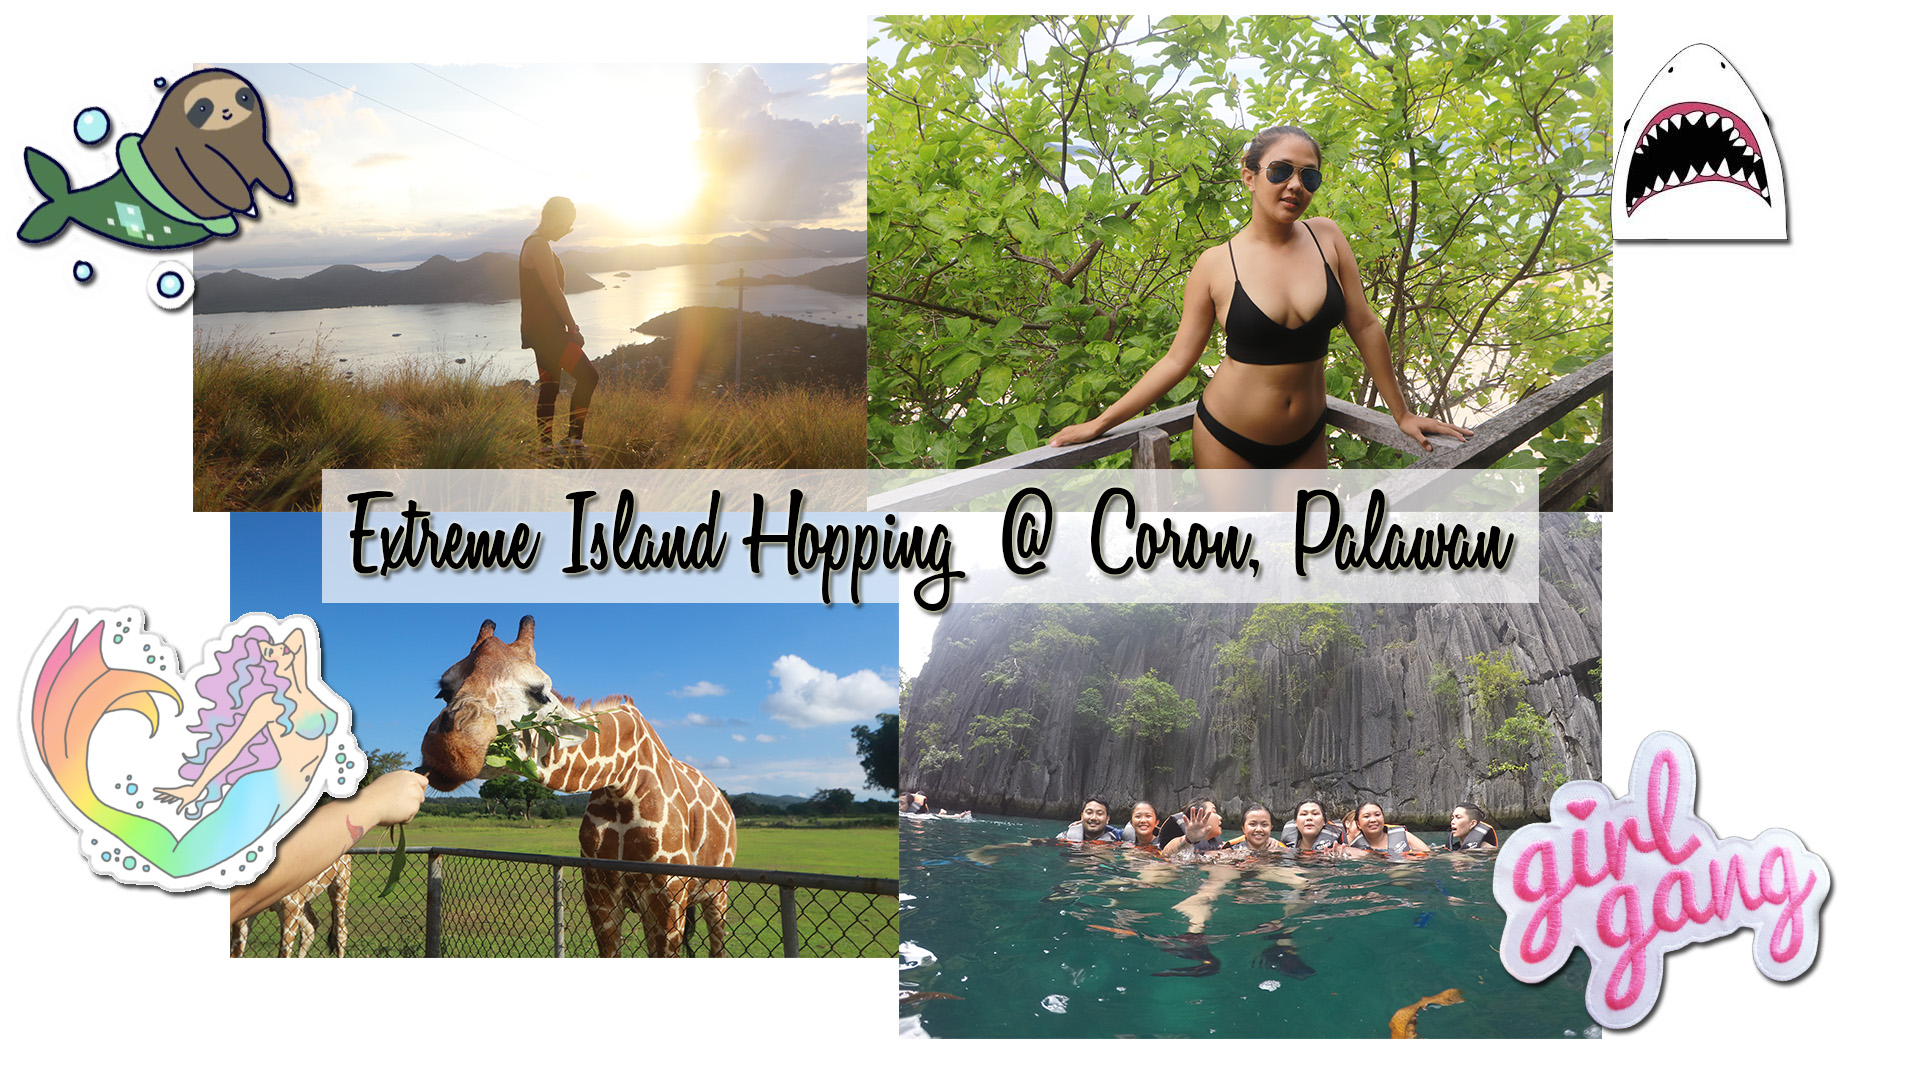 Everything You Need To Know About Coron, Palawan